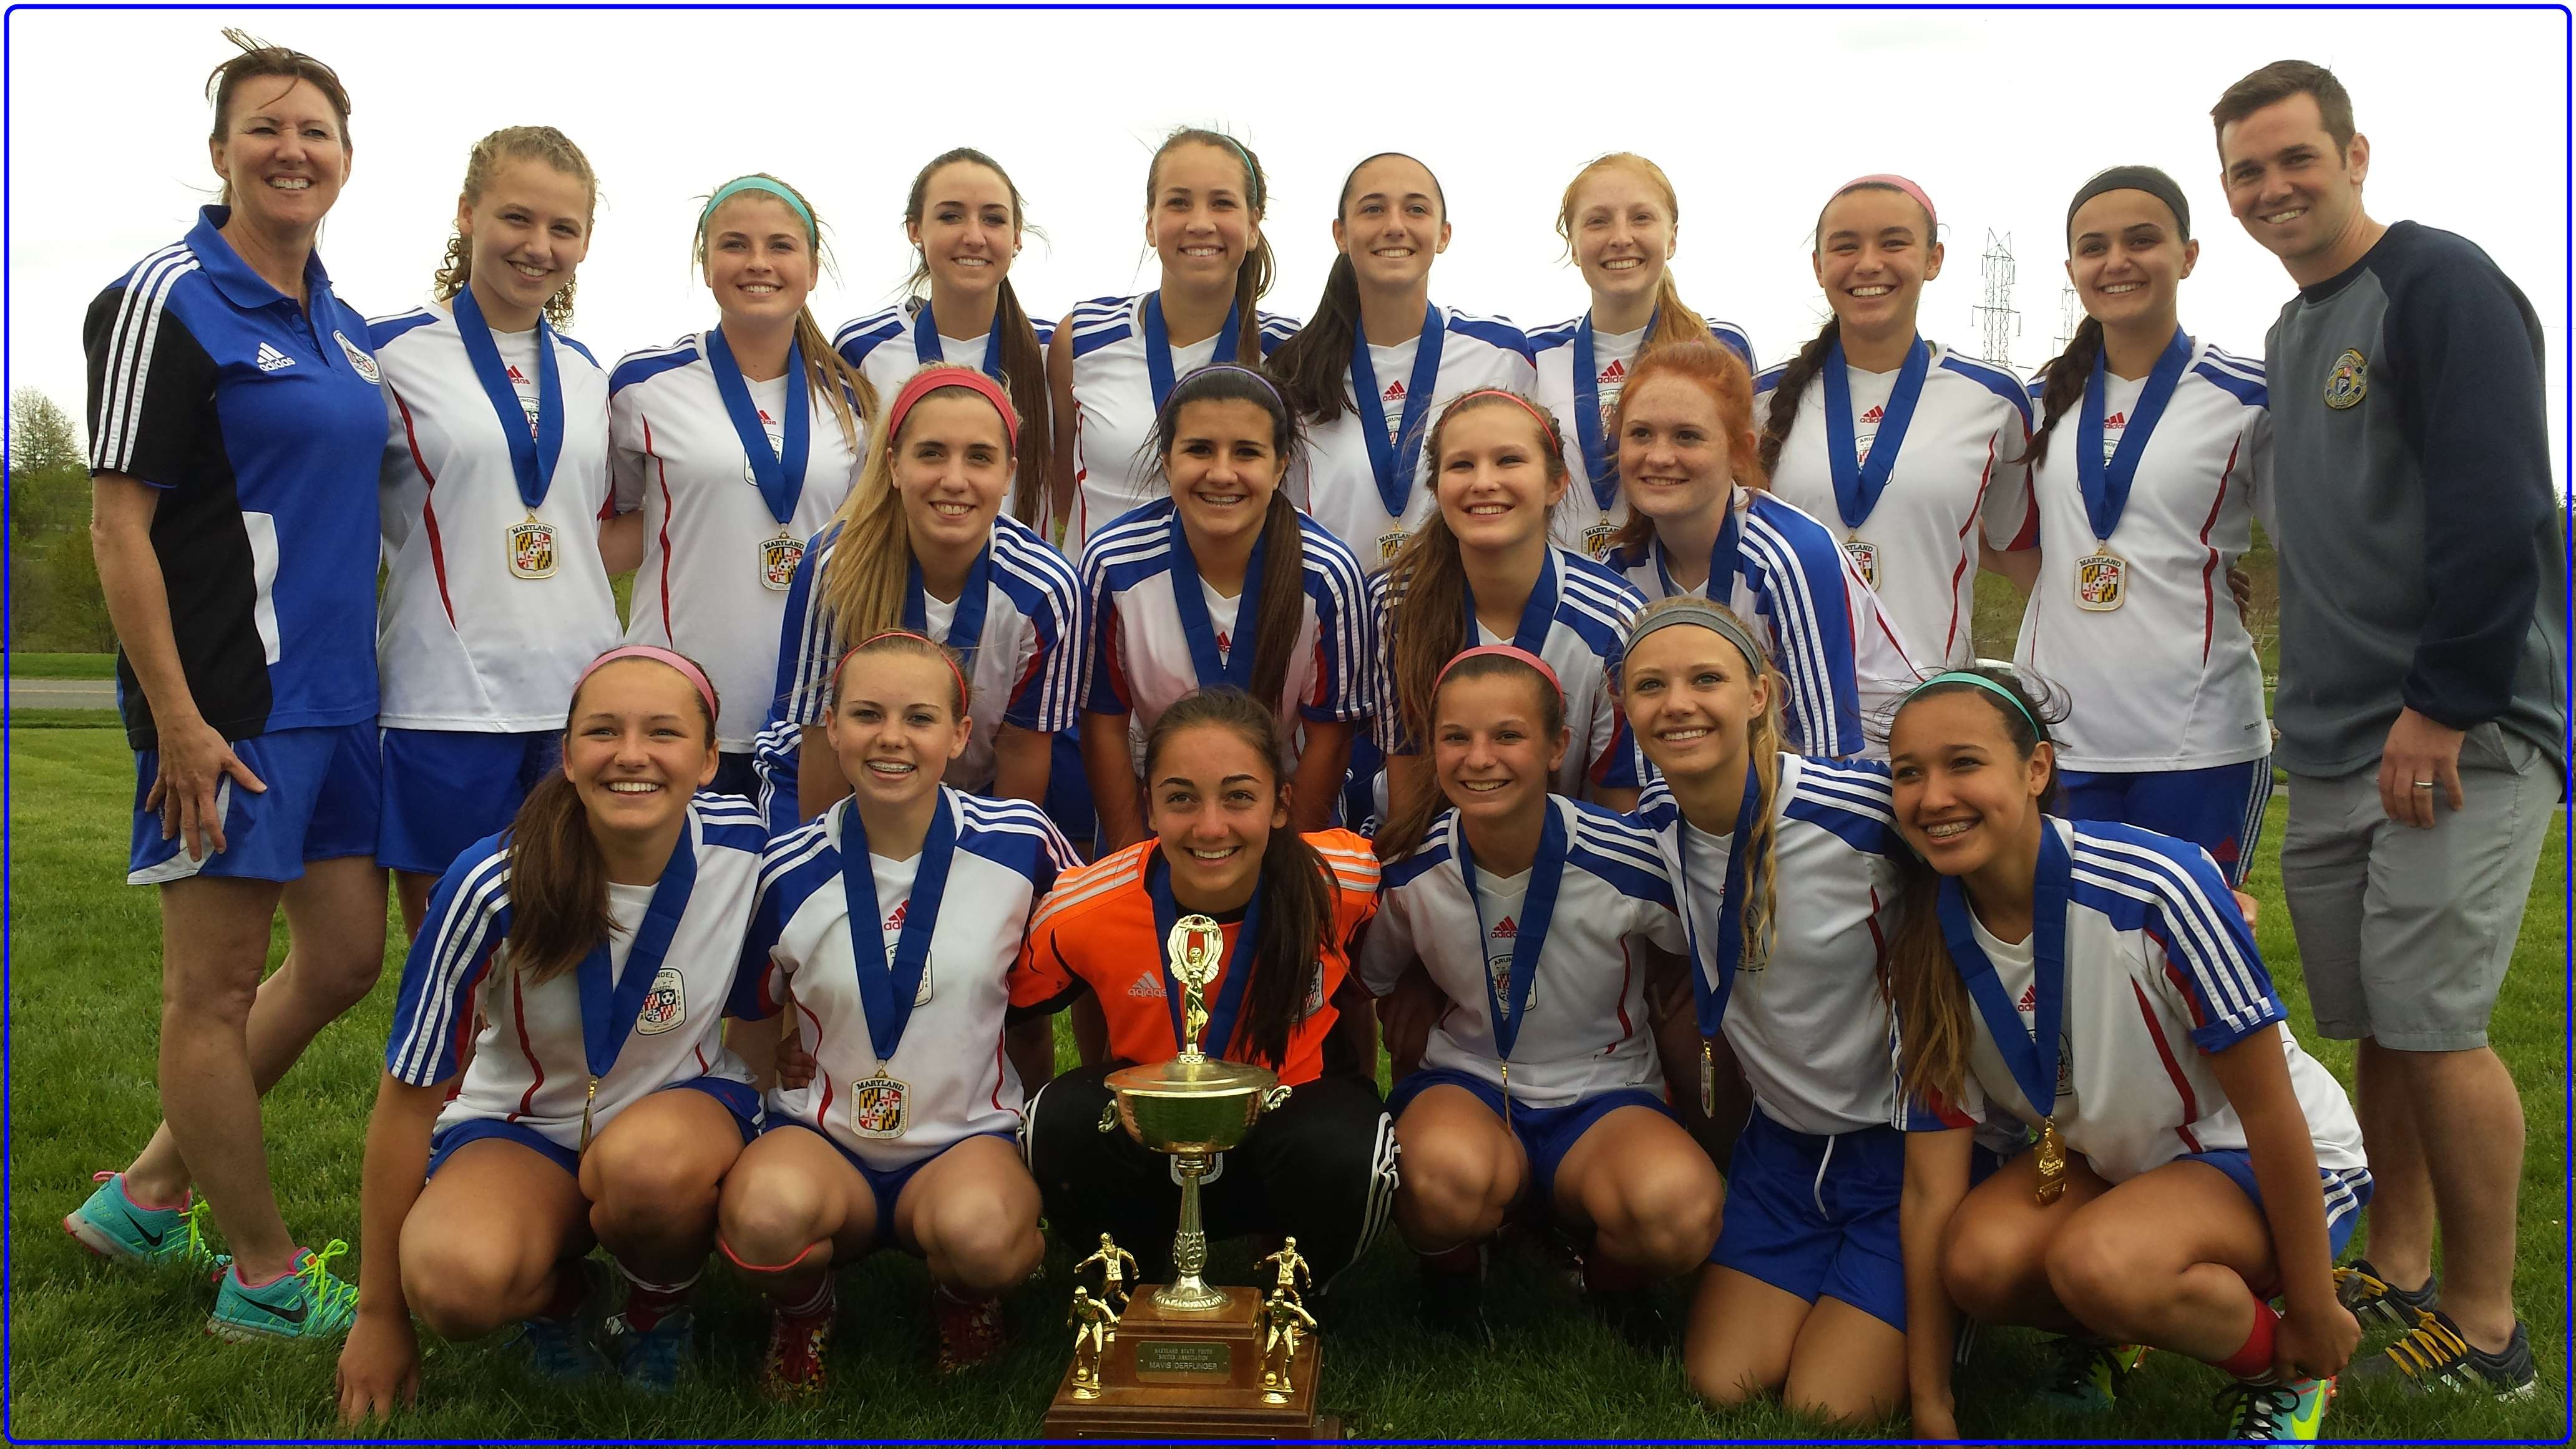 MD State Cup Champs 2014